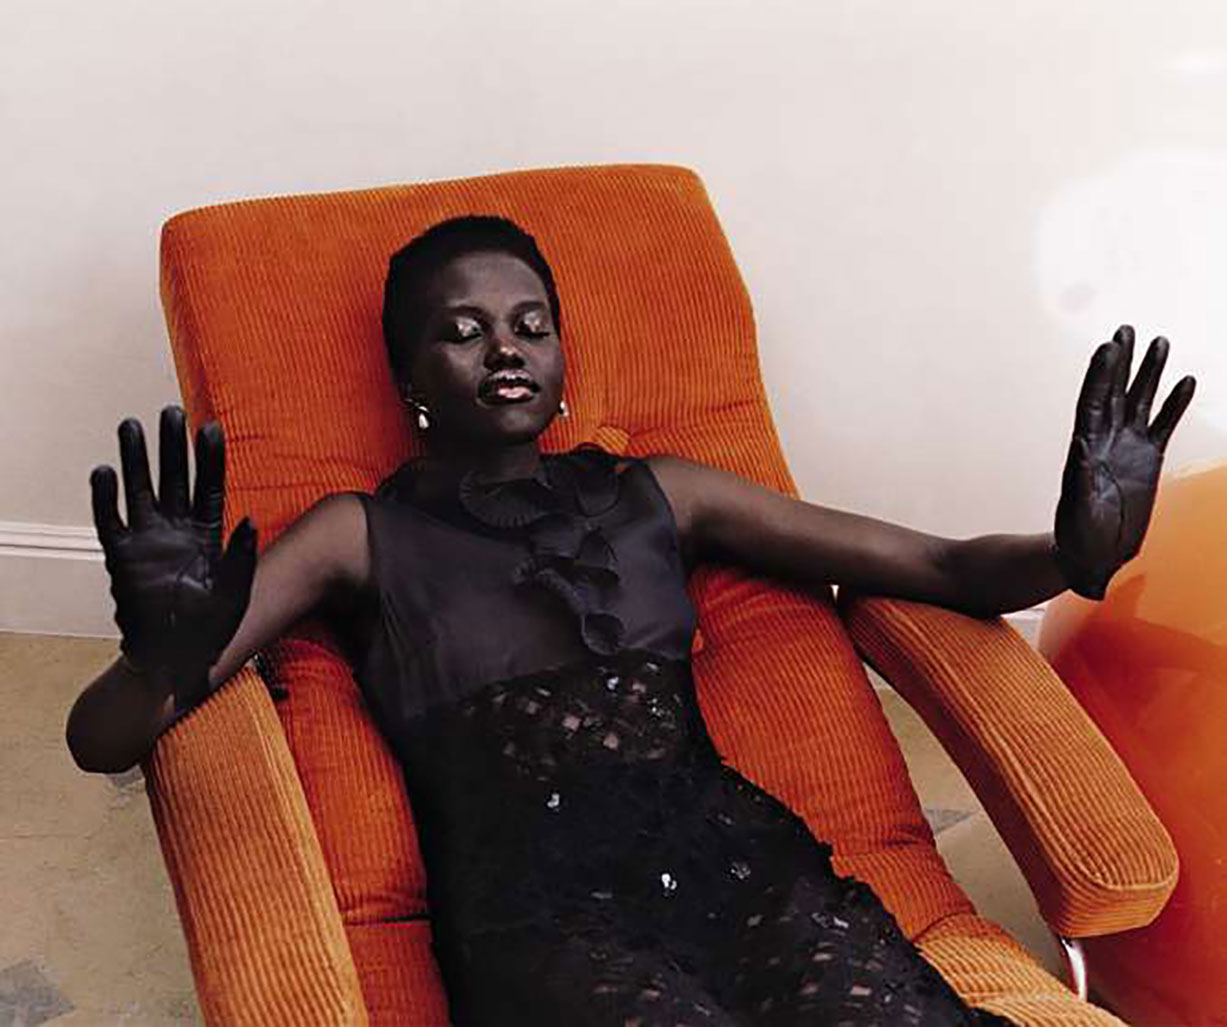 Le Jeu de la Seduction / Adut Akech and Rianne van Rompaey by Harley Weir / M Le magazine du Monde september 2018